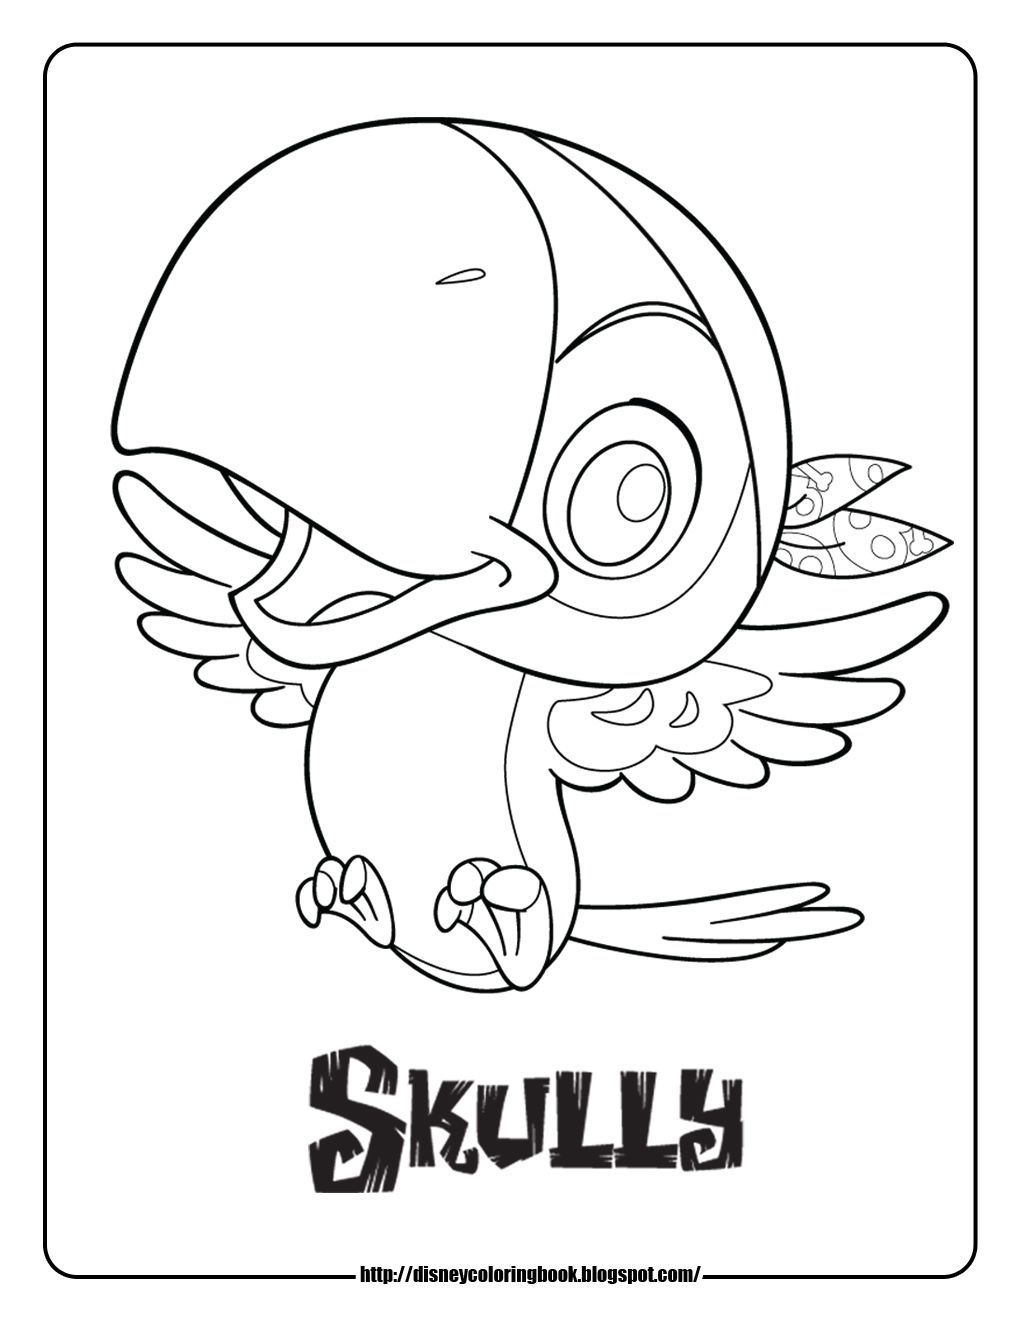 1020x1320 Jake And The Never Land Pirates Coloring Pages Skully Pirate